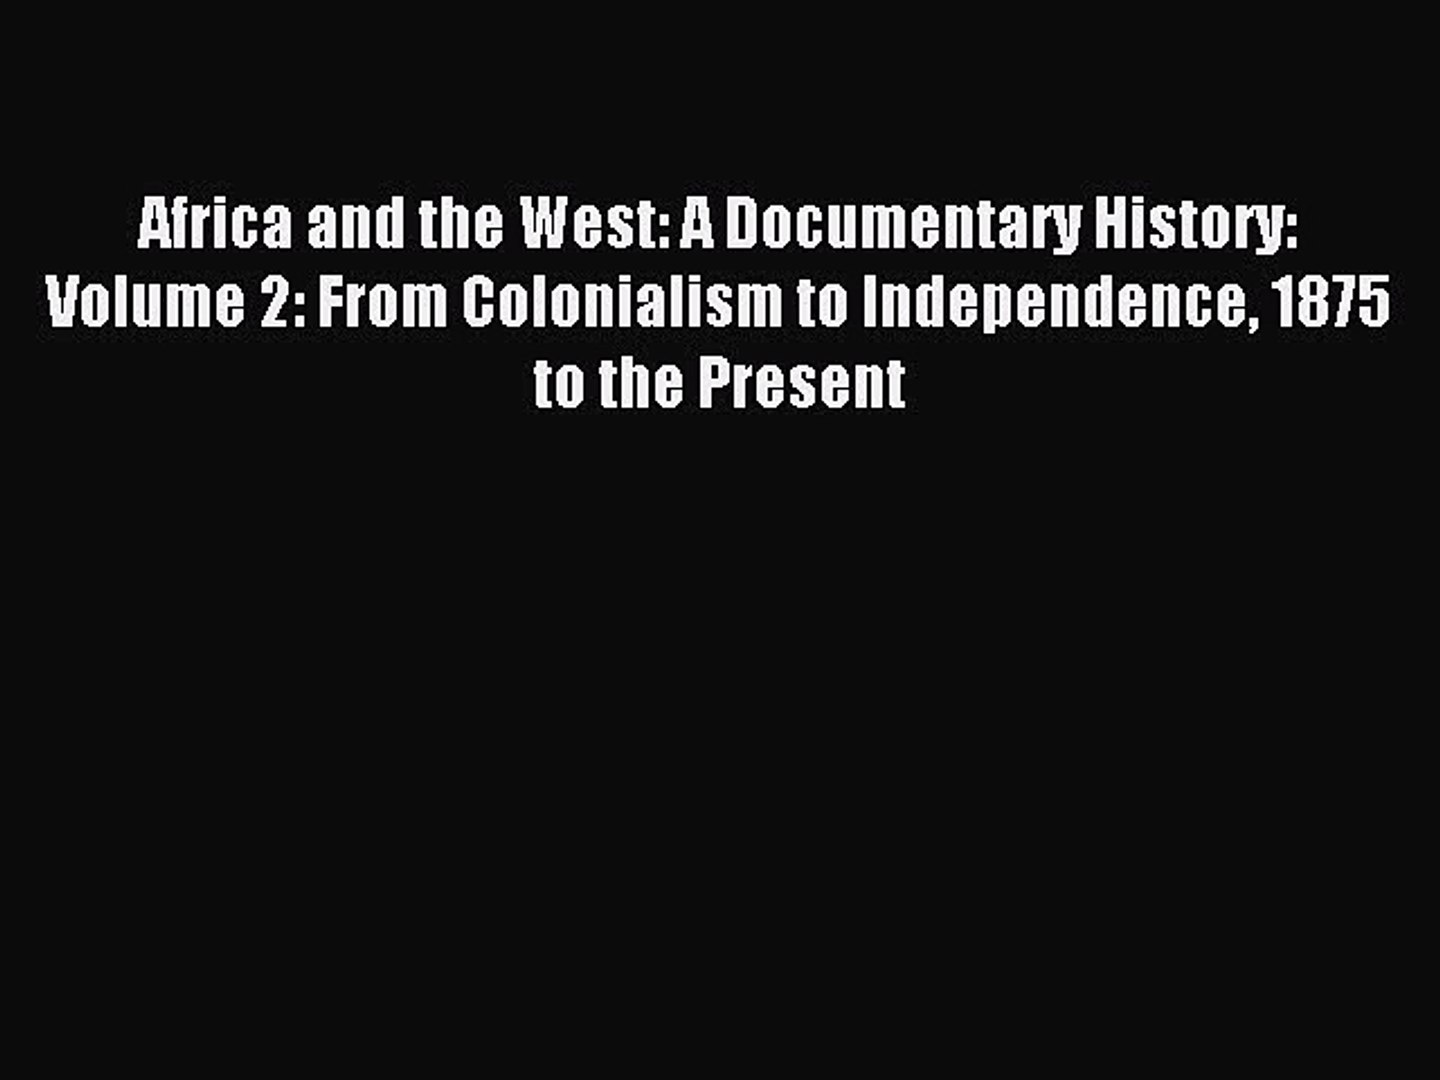 (PDF Download) Africa and the West: A Documentary History: Volume 2: From Colonialism to Independenc